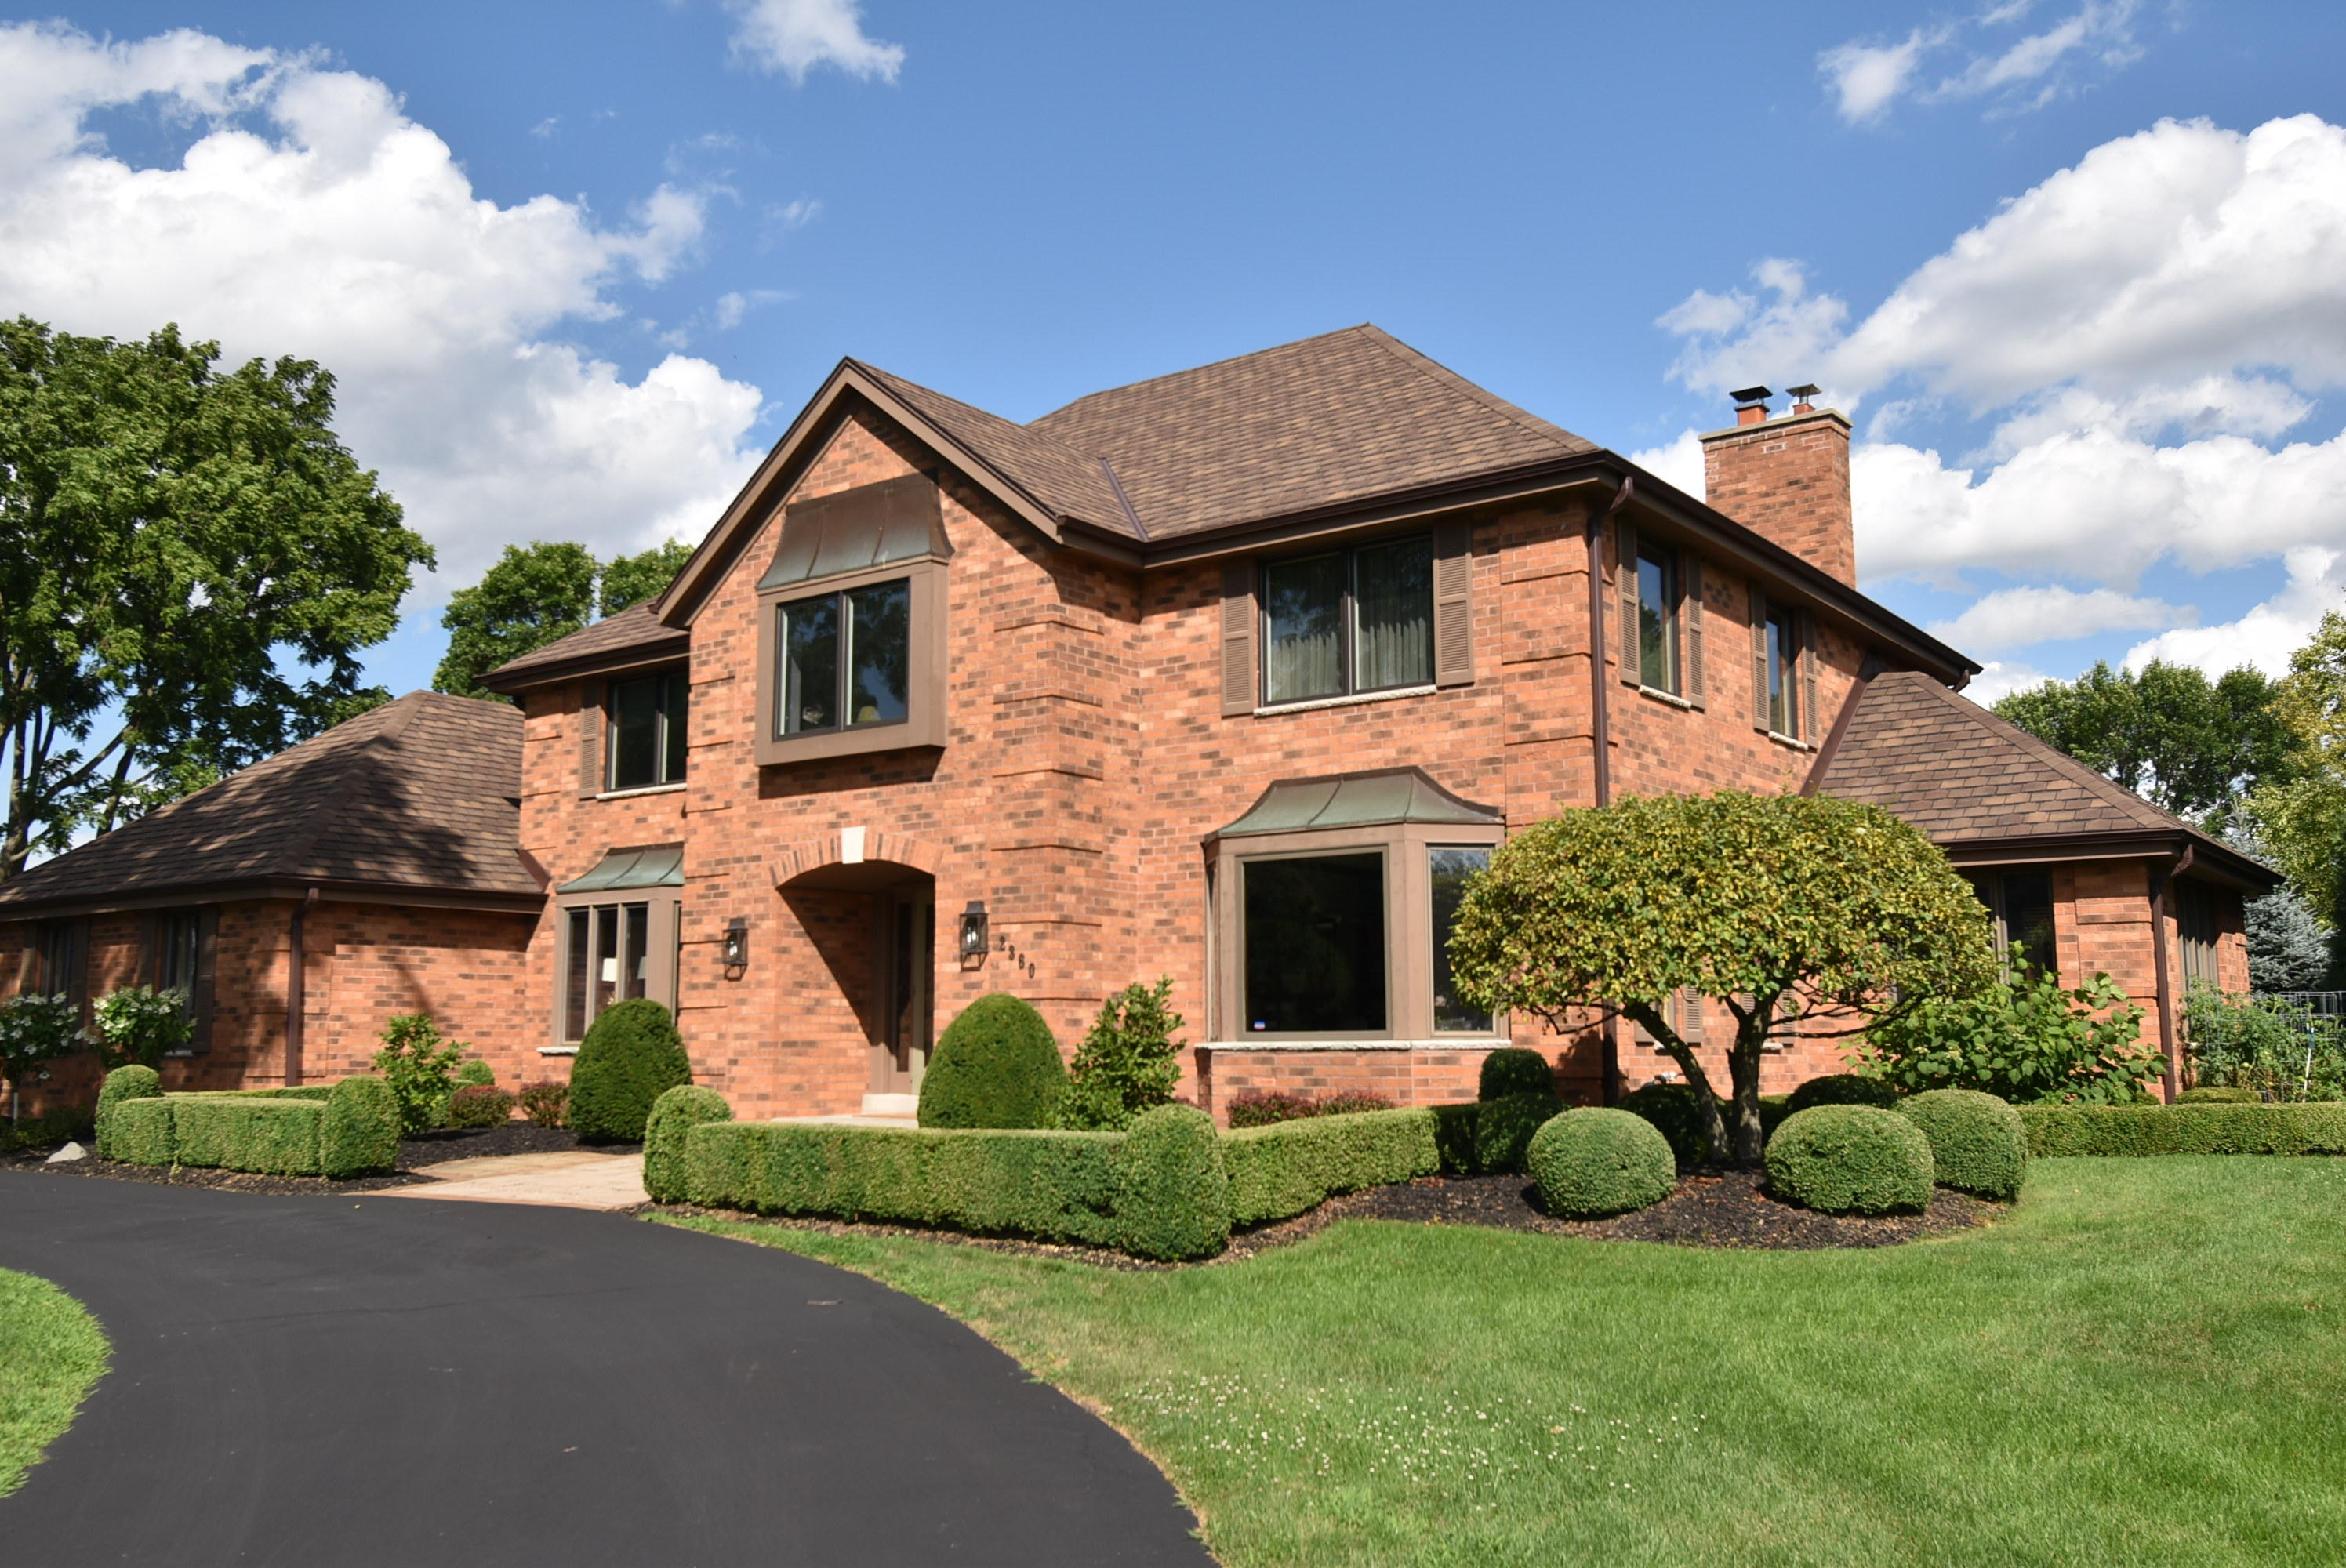 2360 Woodberry Ct, Brookfield, Wisconsin 53045, 5 Bedrooms Bedrooms, 14 Rooms Rooms,4 BathroomsBathrooms,Single-Family,For Sale,Woodberry Ct,1702495